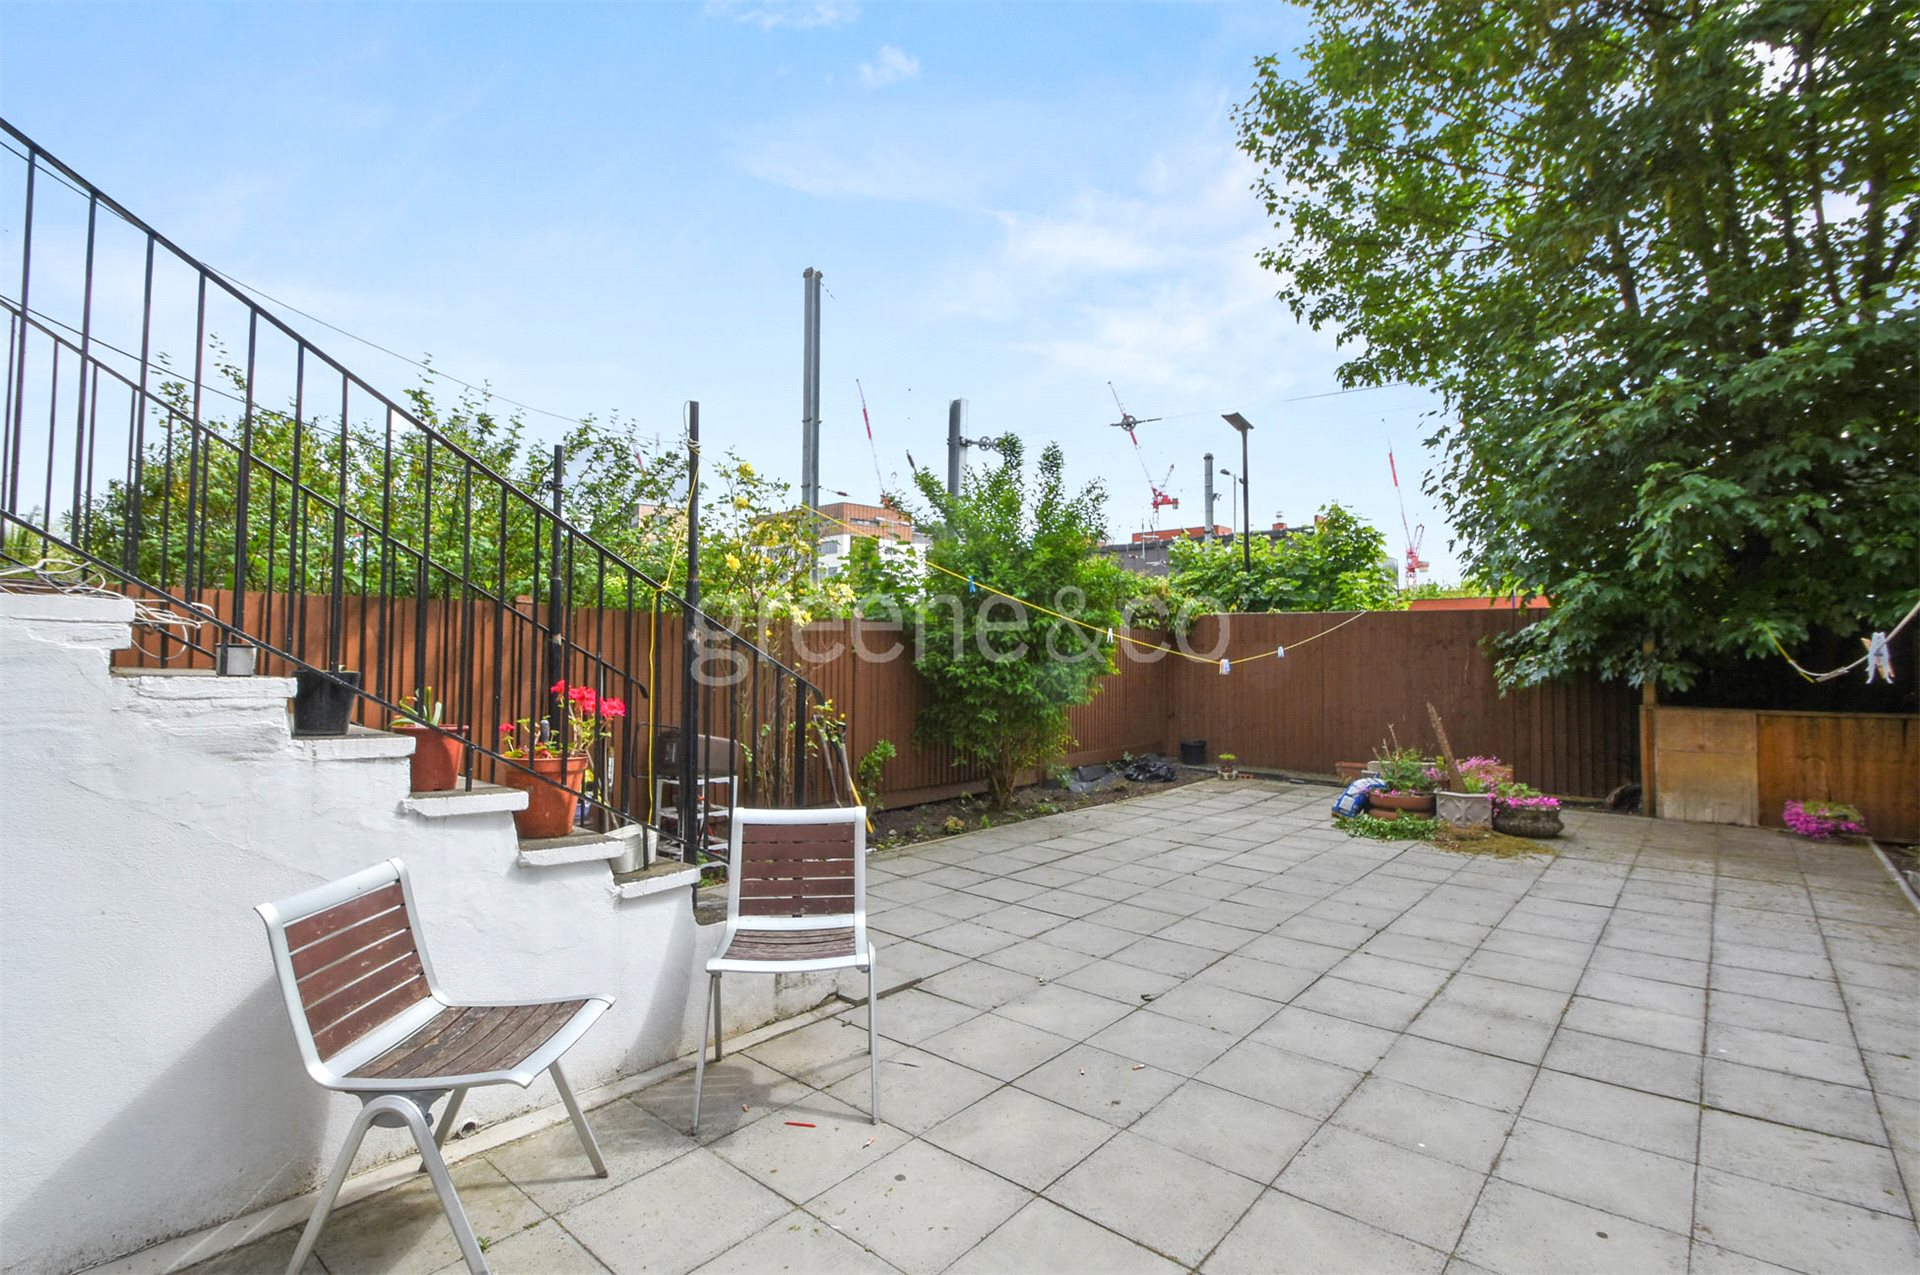 1 Bedroom Flat for sale in Sumatra Road, West Hampstead, London, NW6